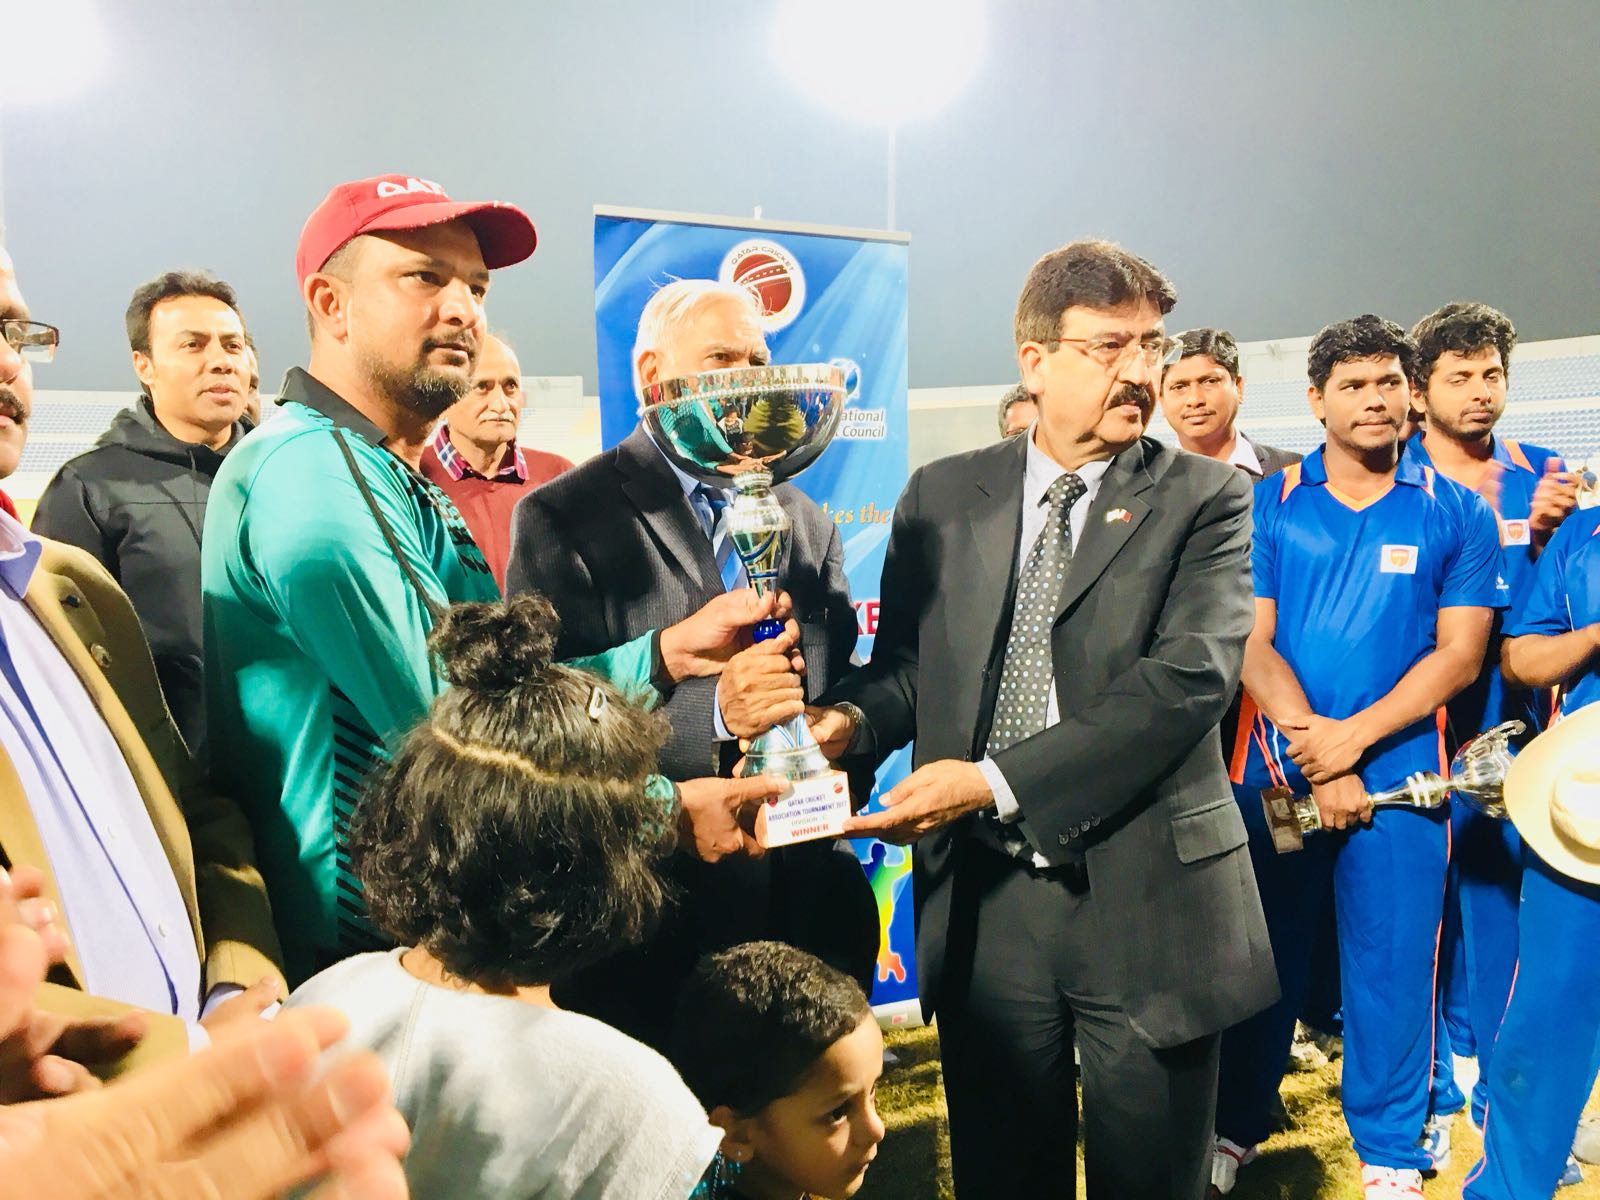 Champion trophy presented by Qatar Cricket Association domestic head to Division C winners Mosanda Cricket Club, captained by Ahmer Khan.